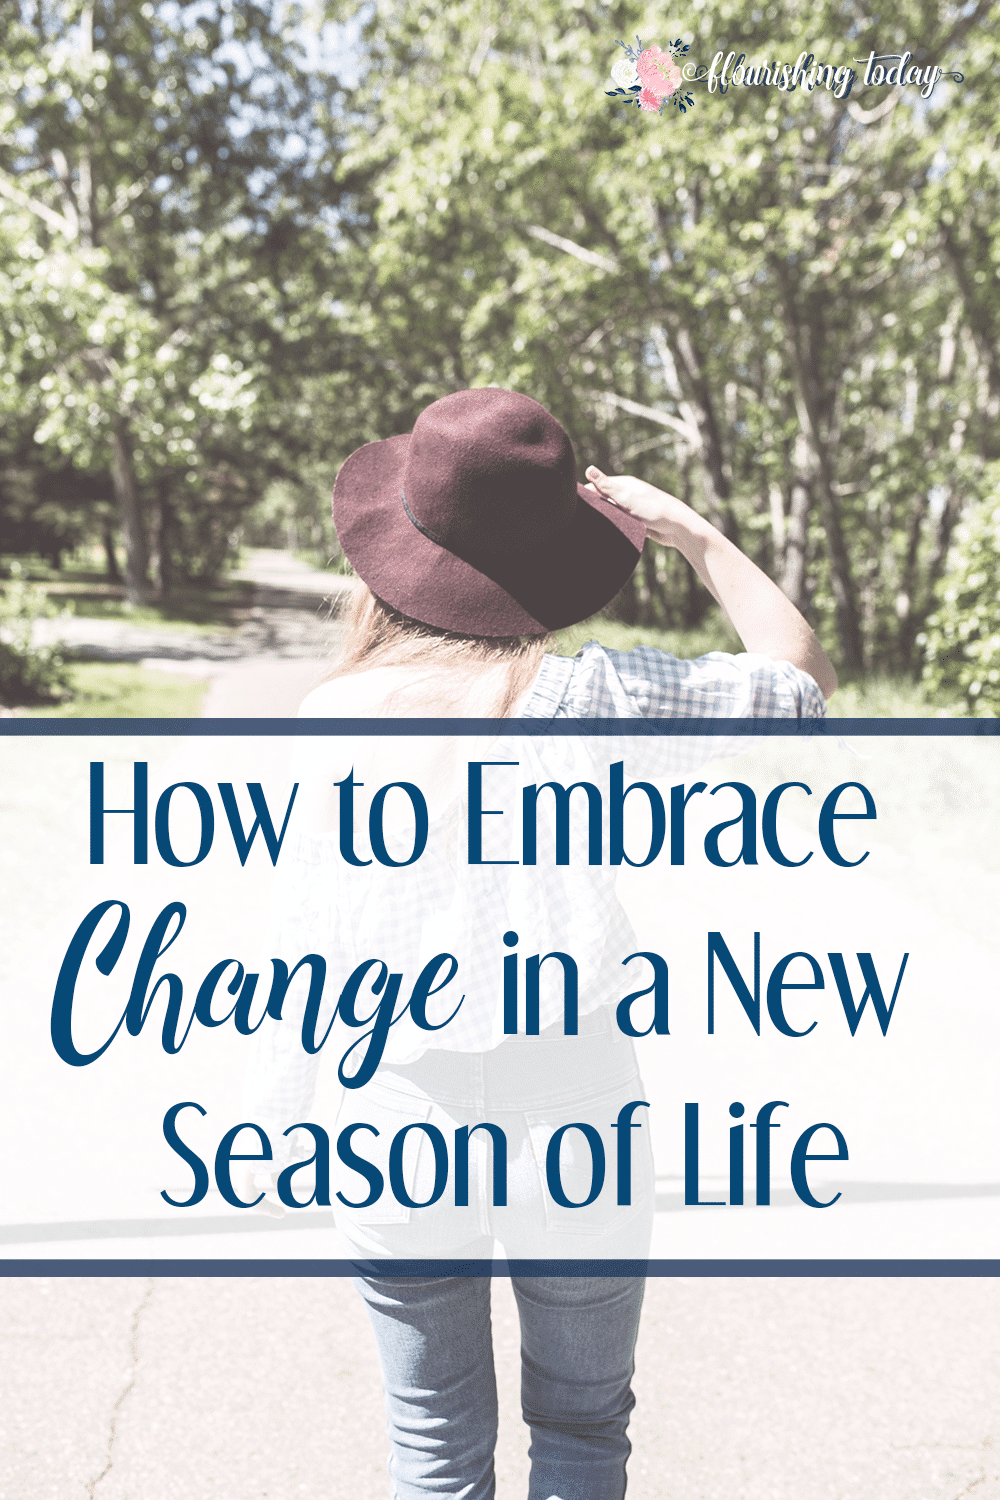 Are you going through a new season in life? Life changes can be difficult if we don't know how to navigate them. Here are some tips on how to embrace change in a new season of life. #change #seasons